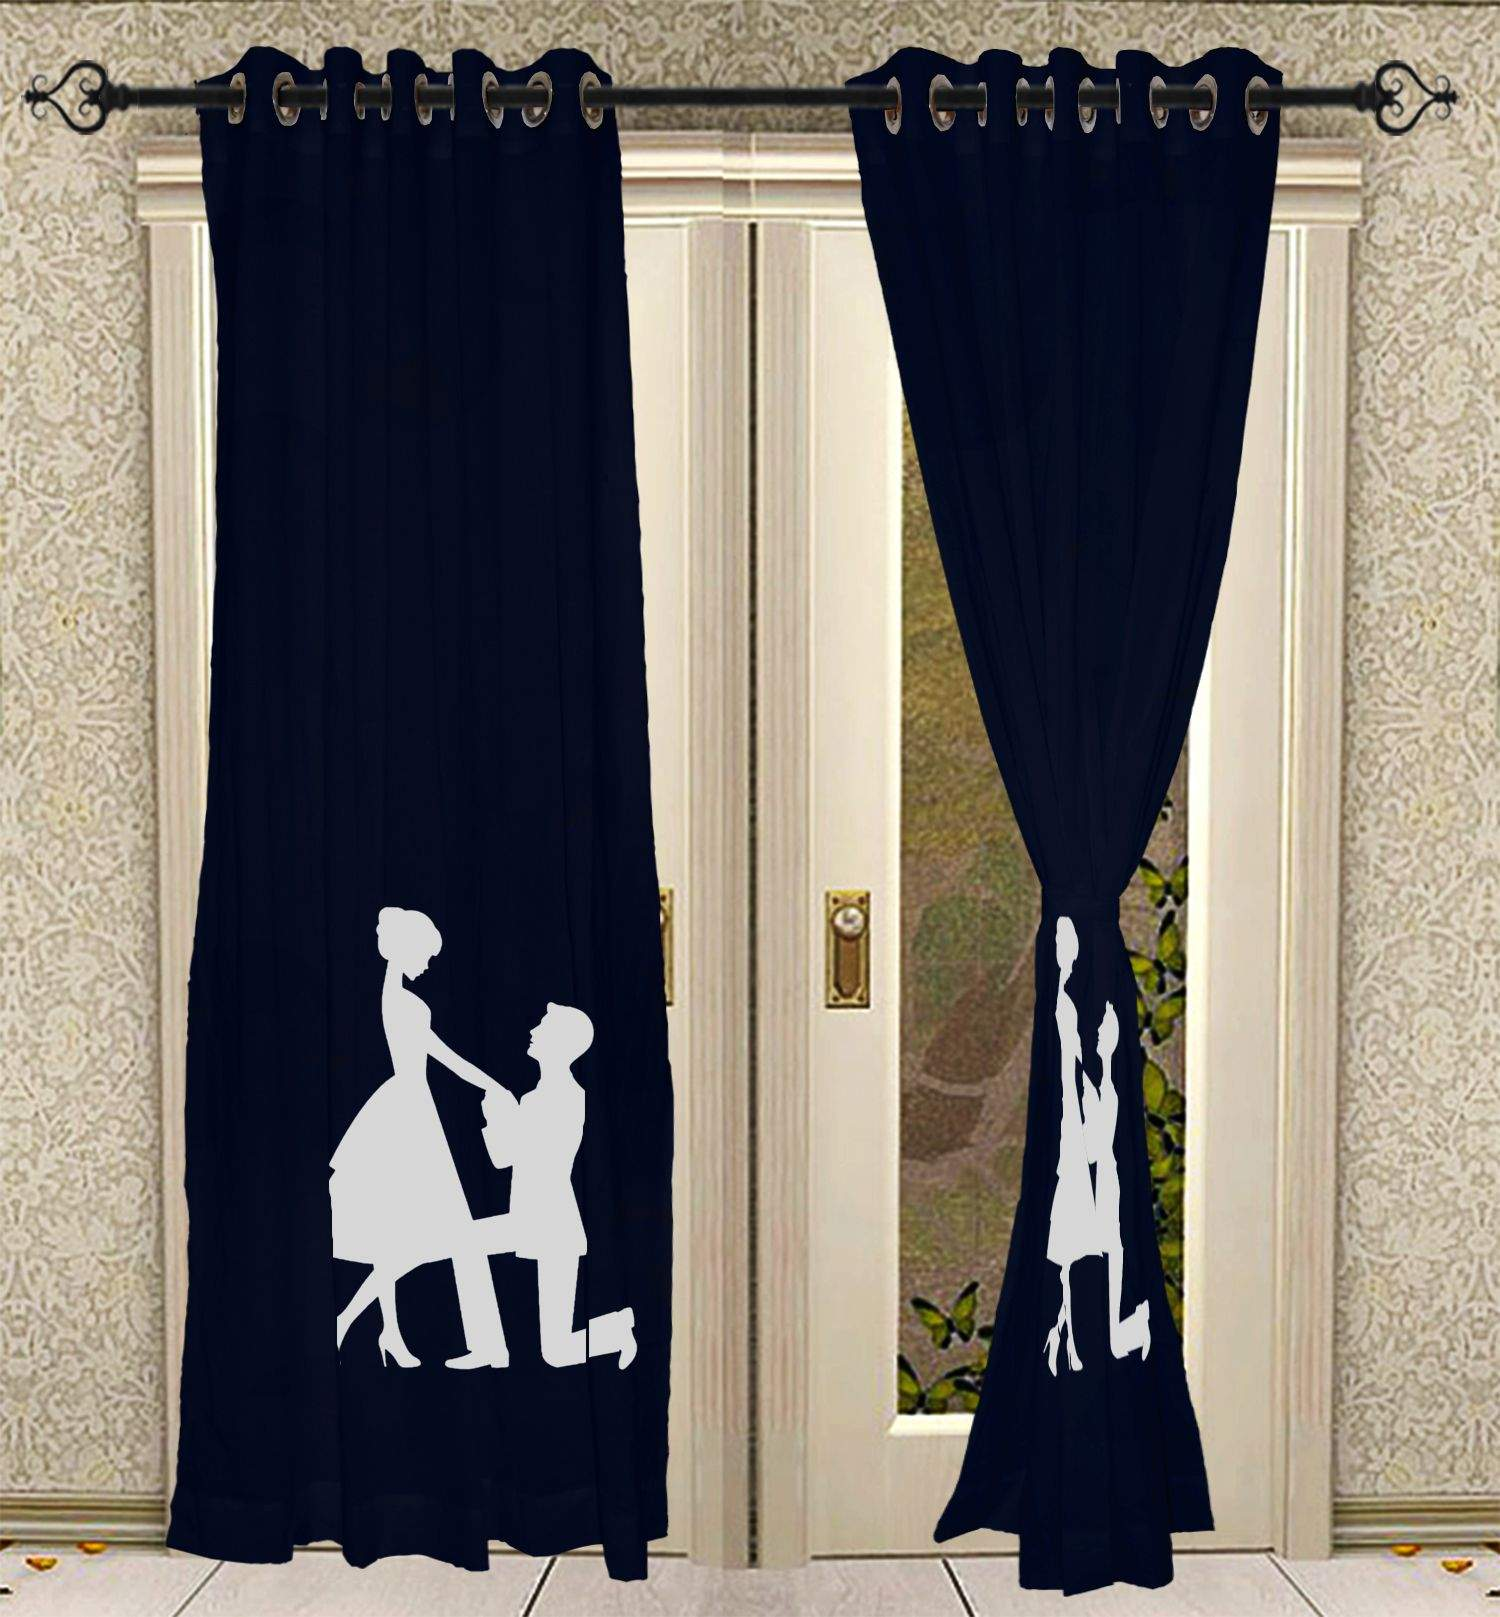 Eyelet Hand Block Printed Curtain Panels For Living Room Solid Cotton Blue Curtains 2 Pcs Panel Set